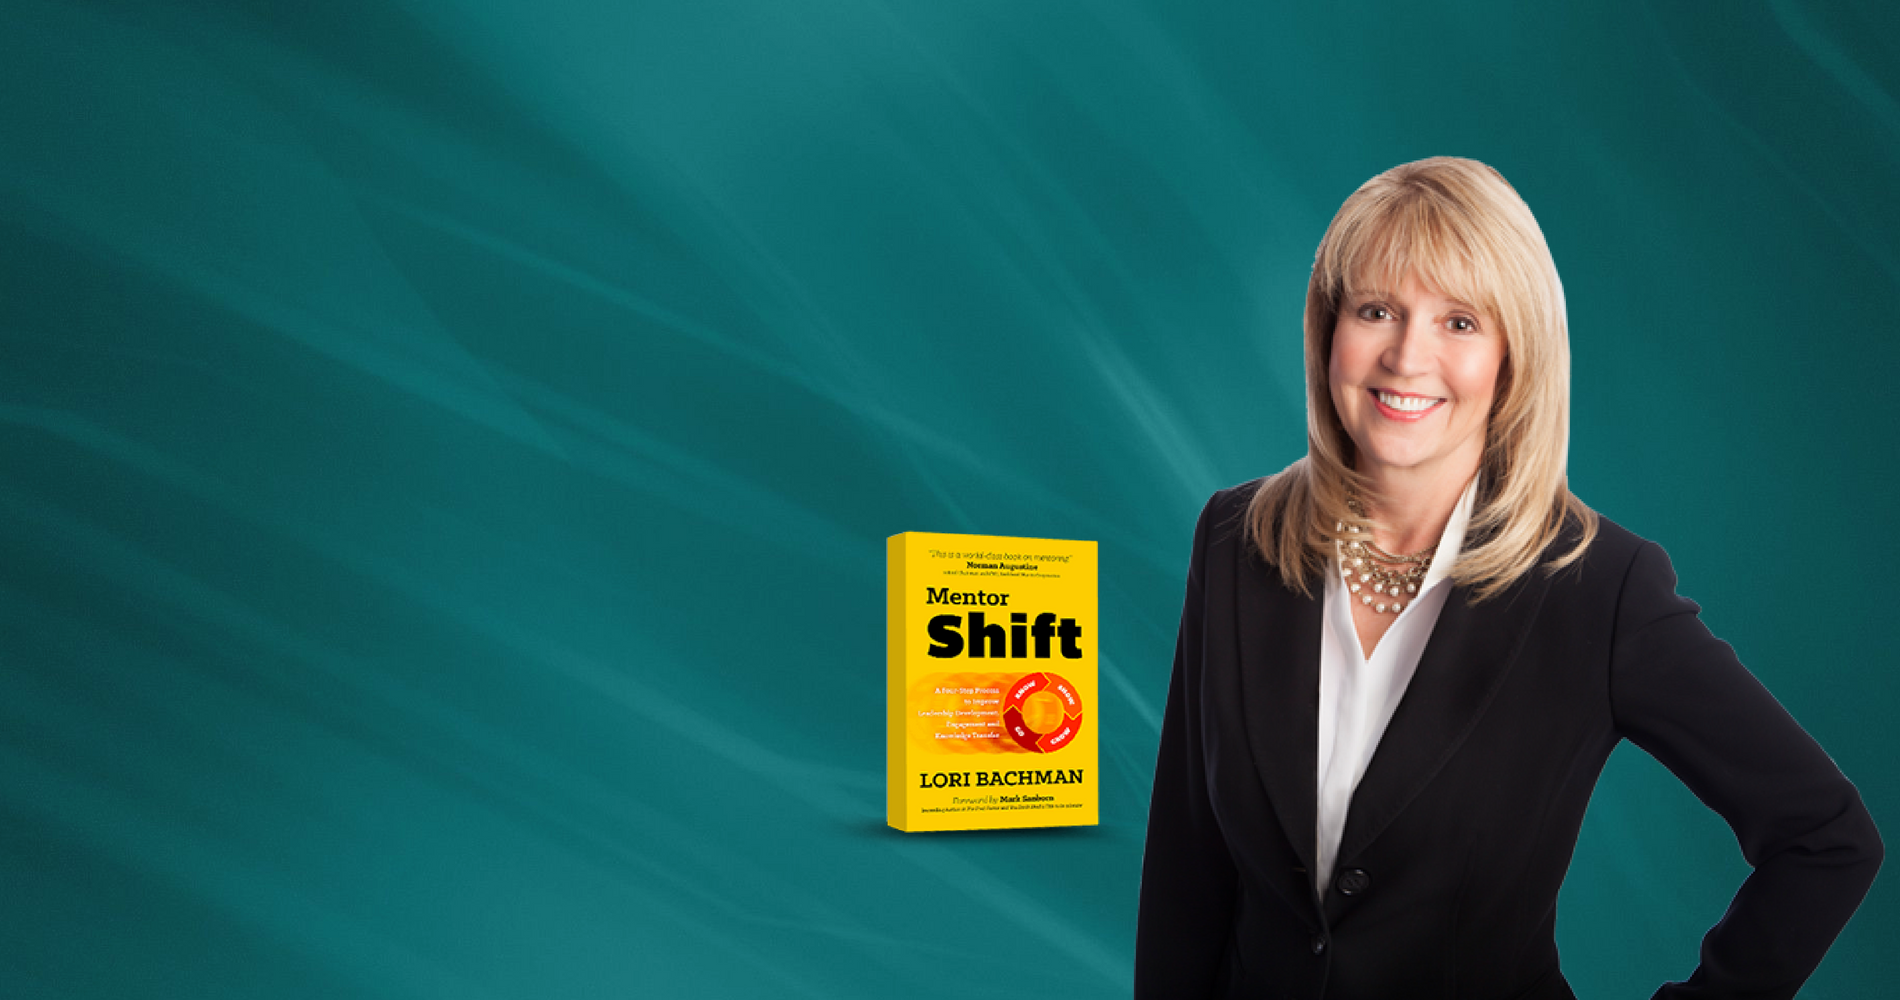 DOES YOUR MENTORING CULTURE NEED A SHIFT?